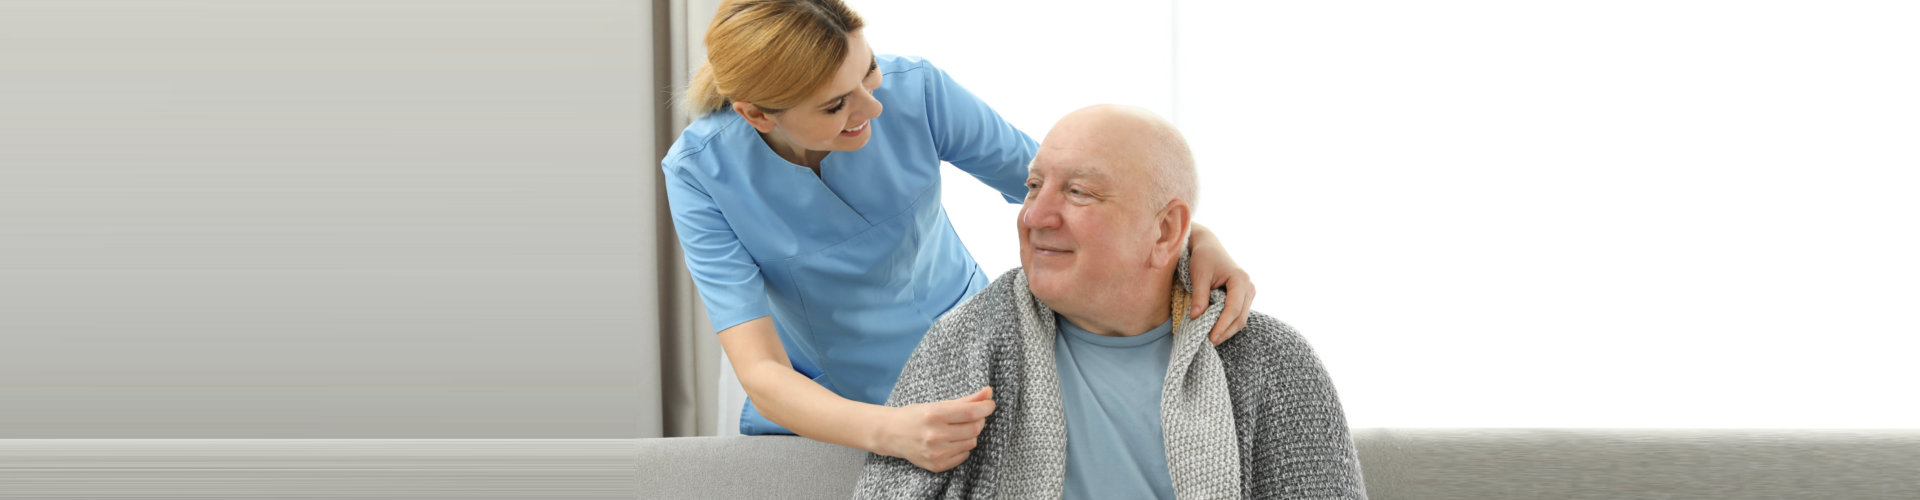 caregiver checking her senior patient on couch